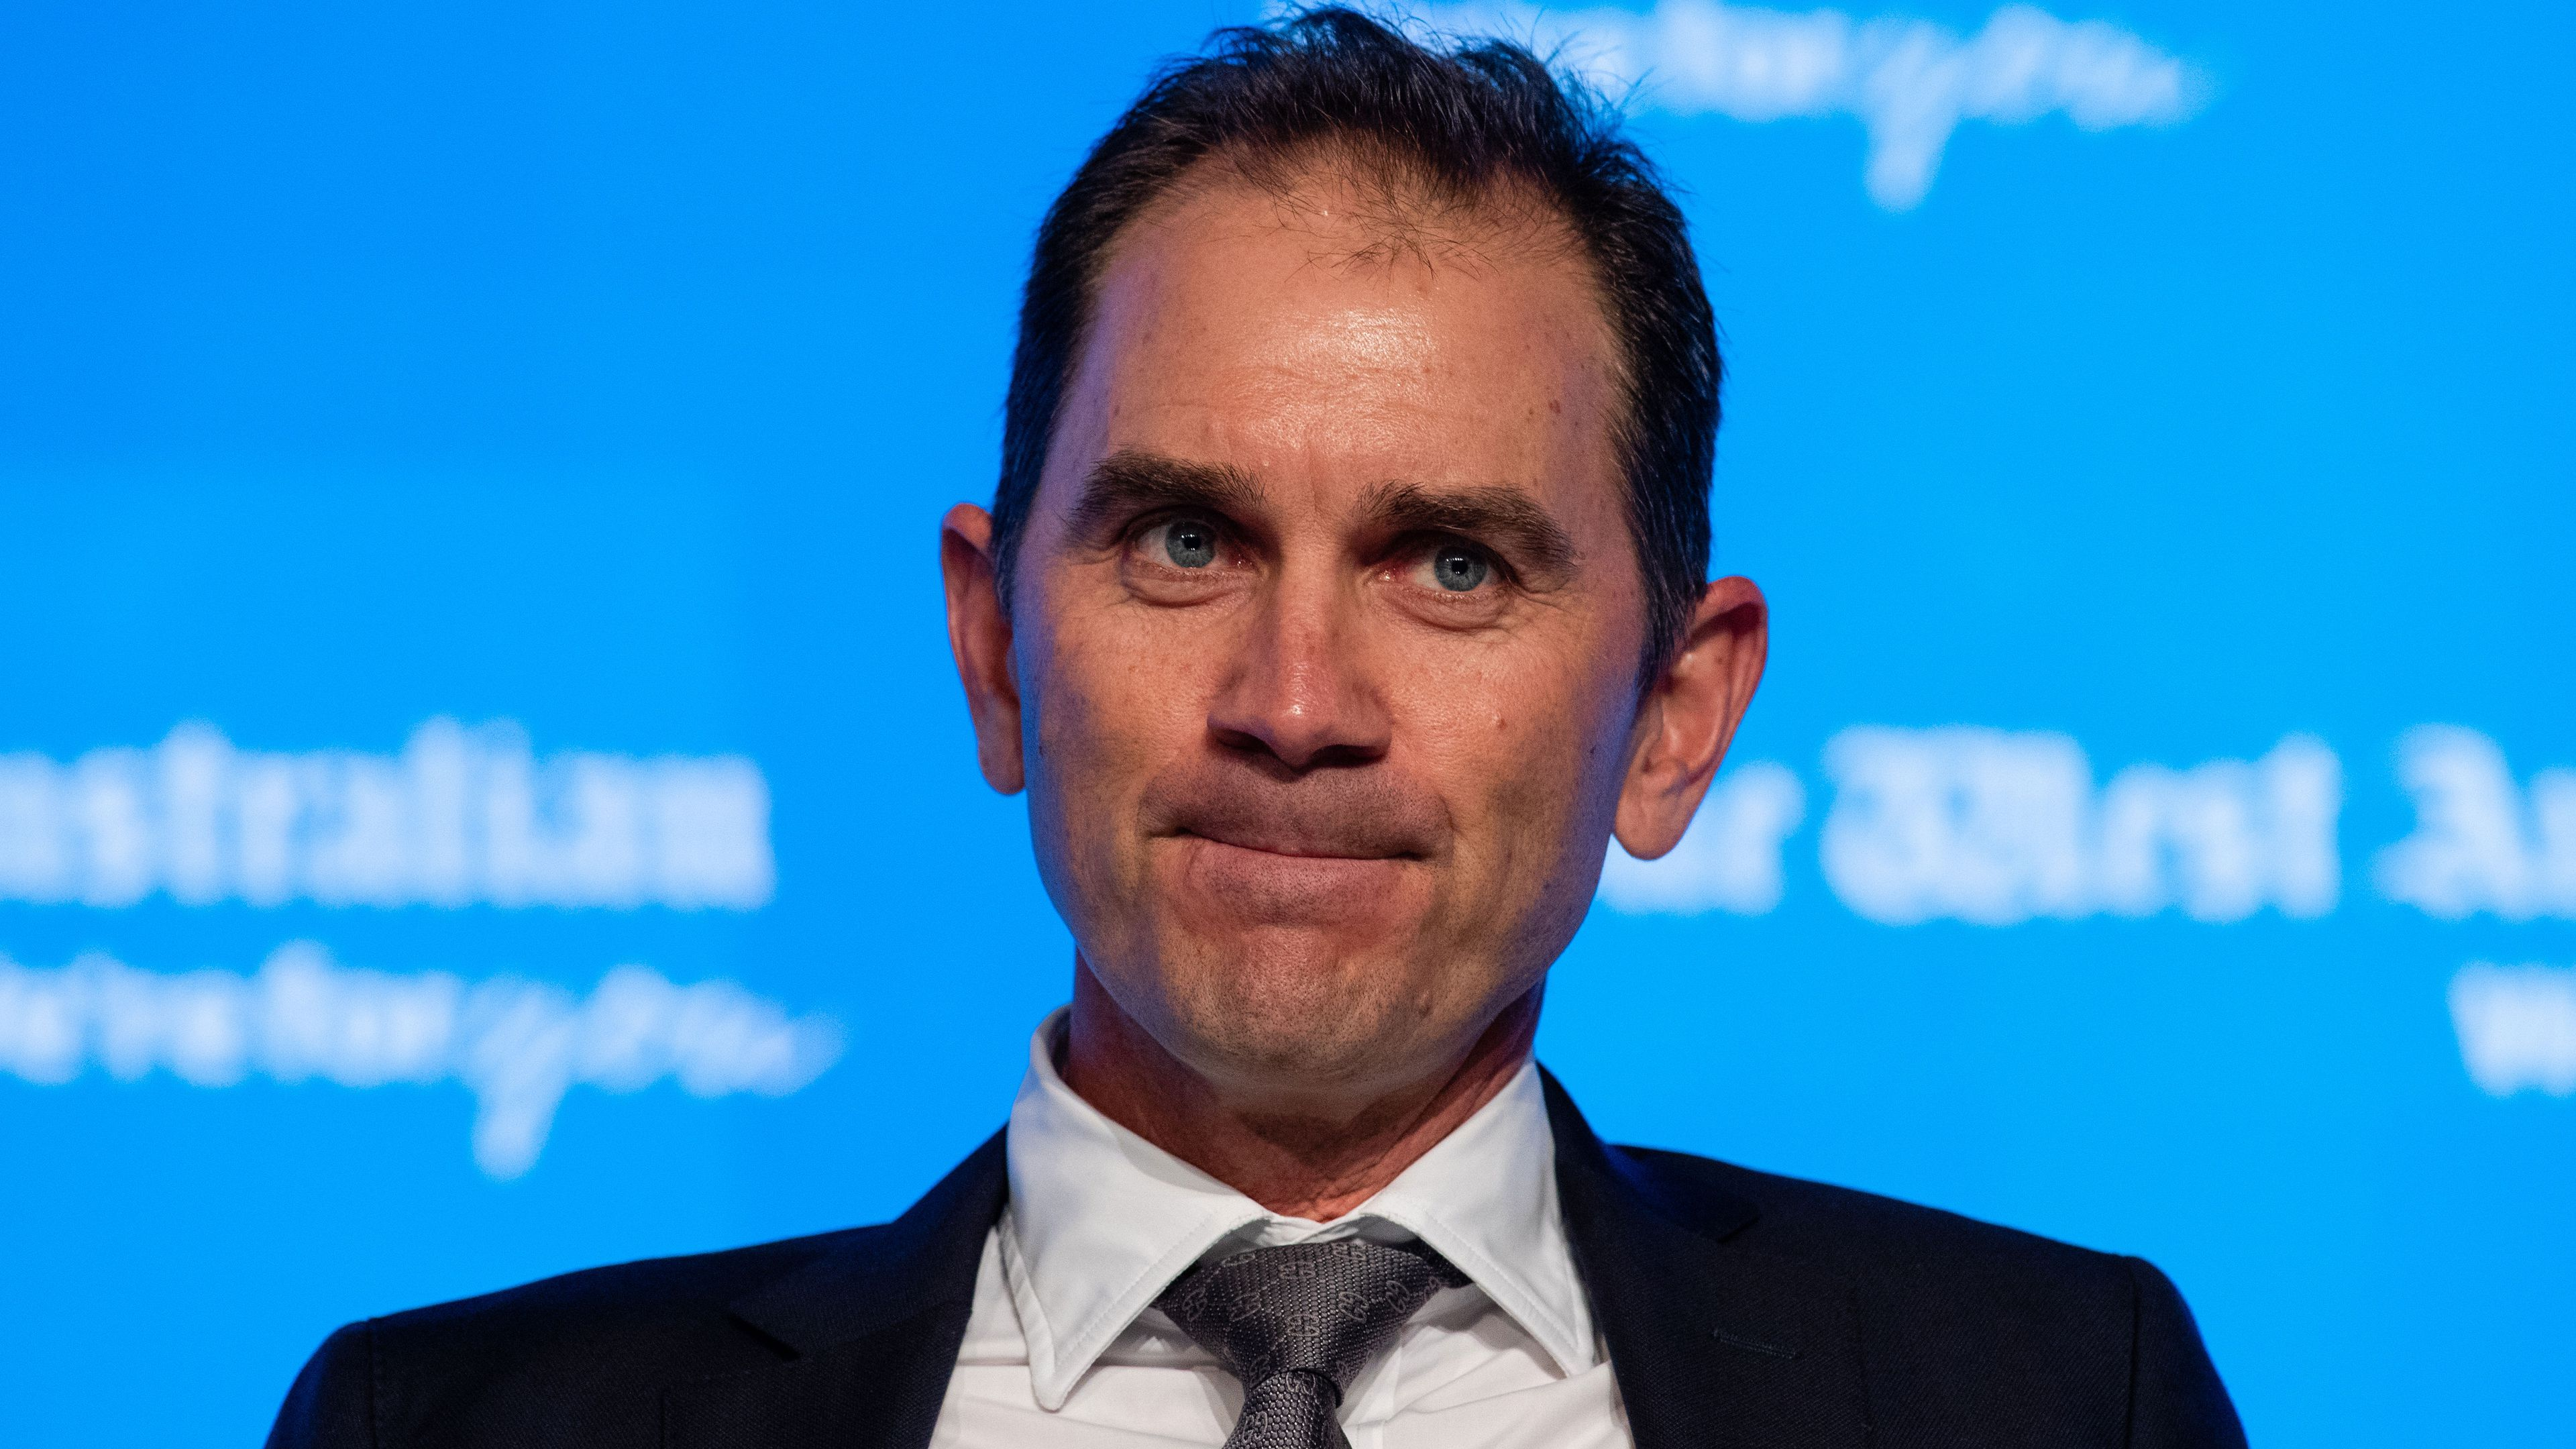 Australia coach Justin Langer reveals his first reaction to ball tampering scandal